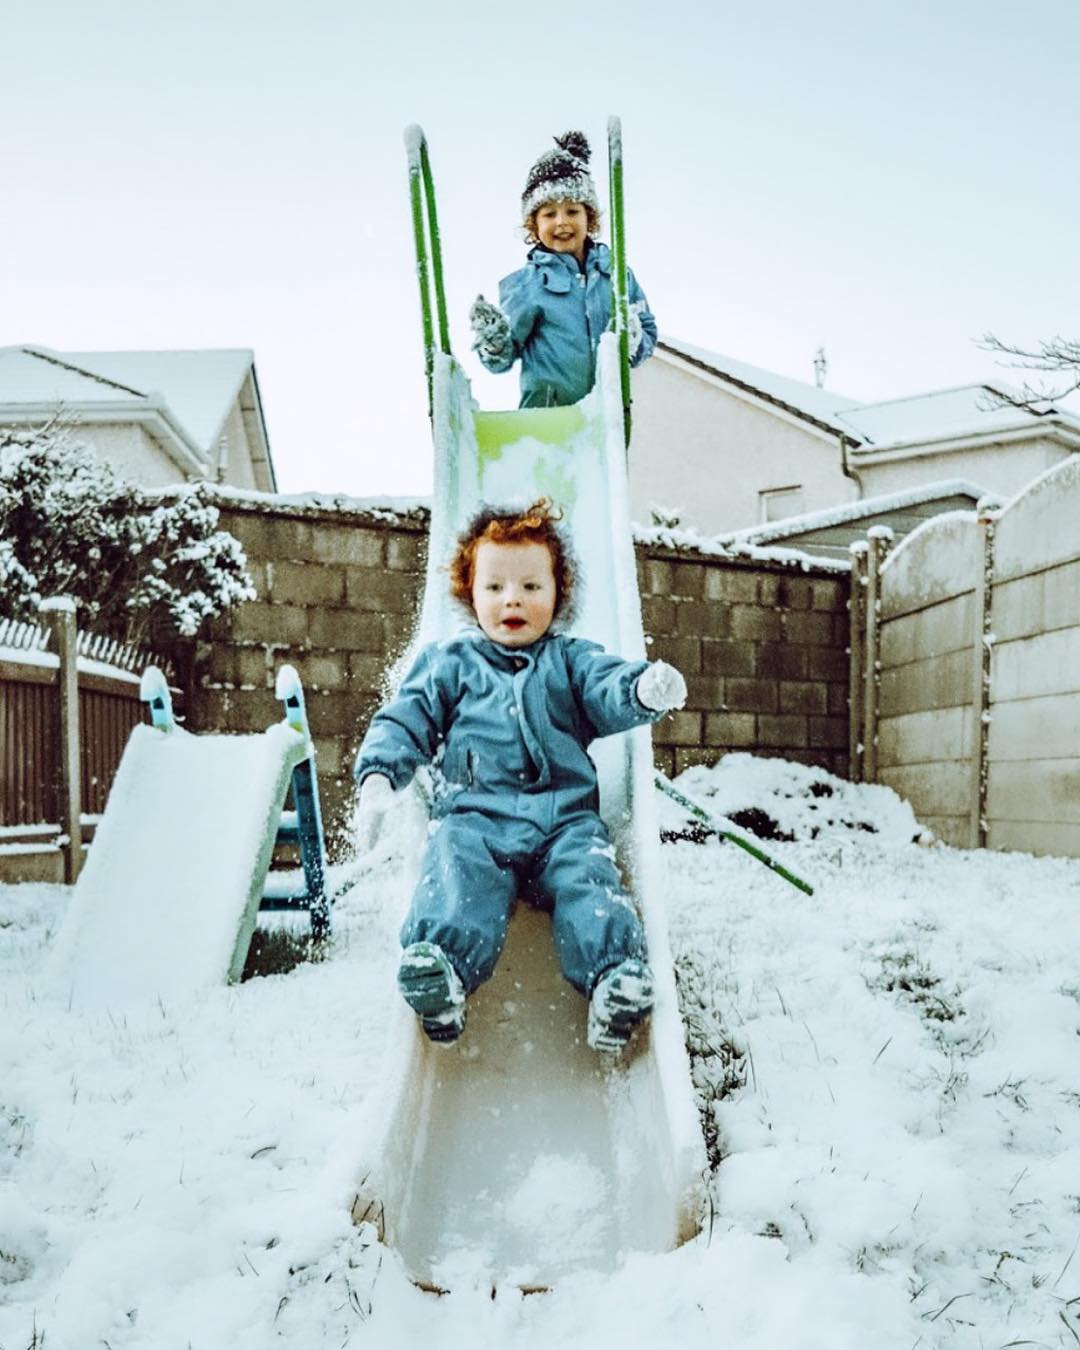 Two children on a slide in the snow